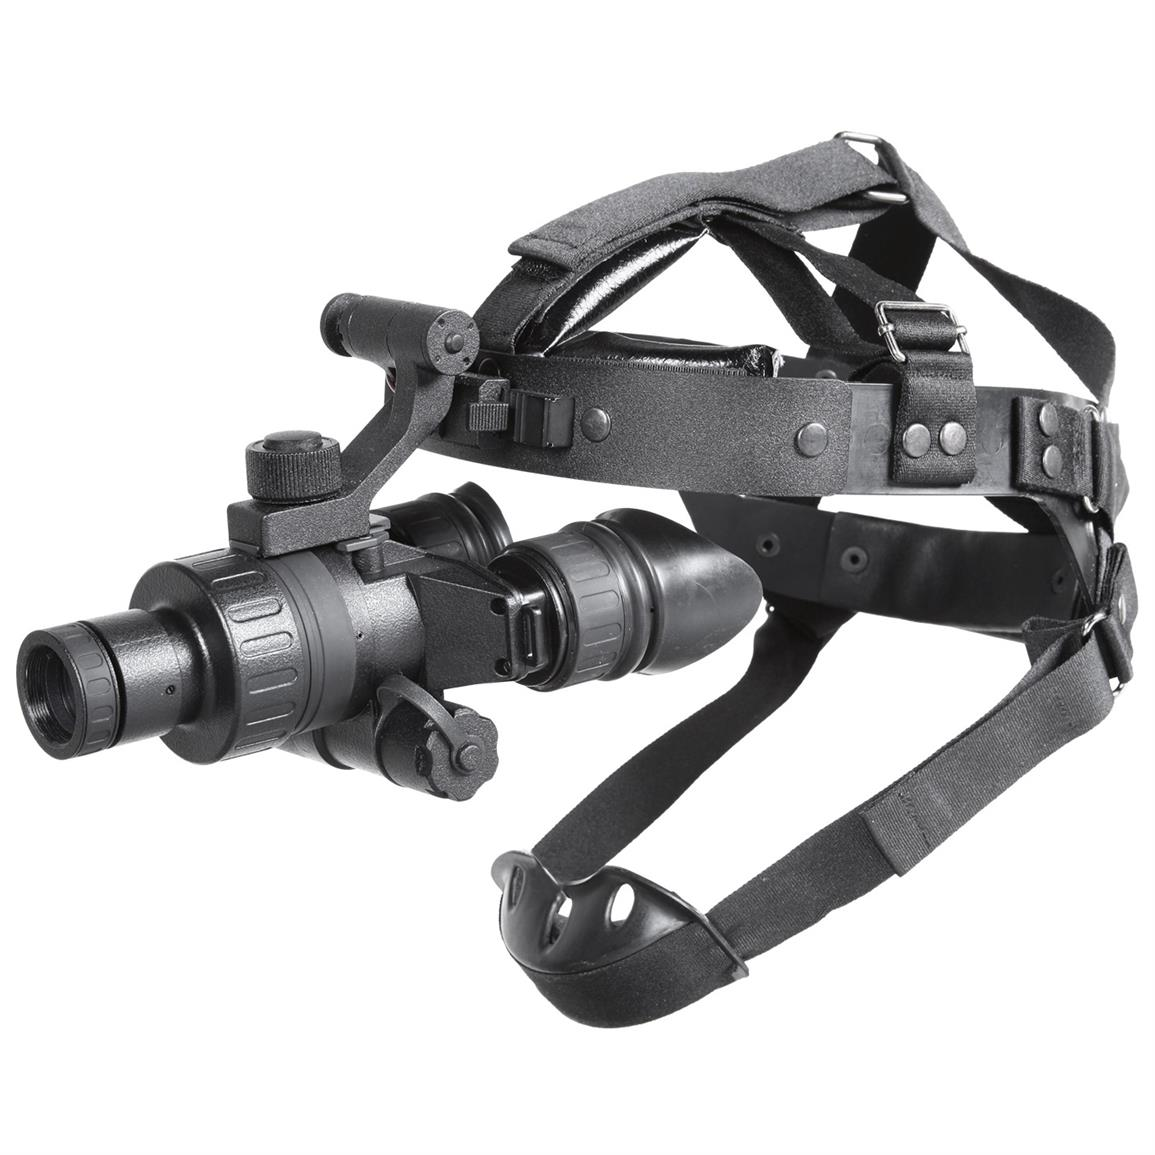 Armasight Nyx7 Gen 2+ QS Night Vision Goggles